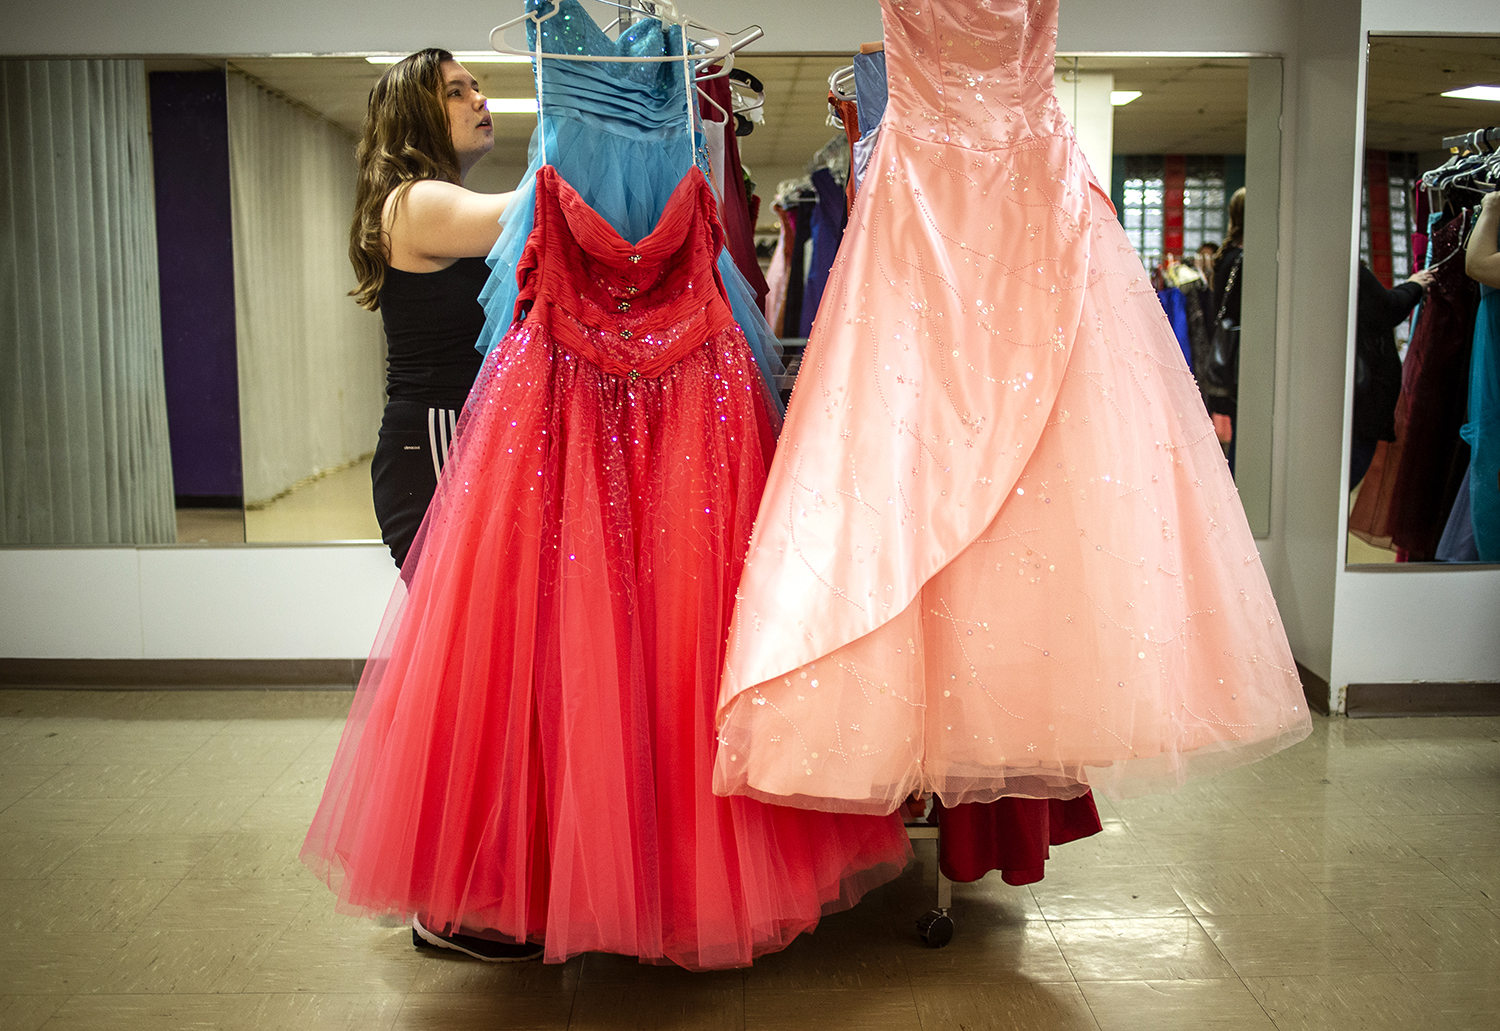 Marilyn Reid, 17, takes one last look through the rack after picking out a dress she liked during the YMCA of Springfield's Prom It Forward event at the Downtown YMCA, Sunday, March 24, 2019, in Springfield, Ill. The Prom It Forward program allows high school girls to purchase any gently used dress for a donation to the YMCA's Strong Kids Scholarship Fund. They will hold one more event for the season on April 28th and are also still accepting donations of dresses as well. [Justin L. Fowler/The State Journal-Register]